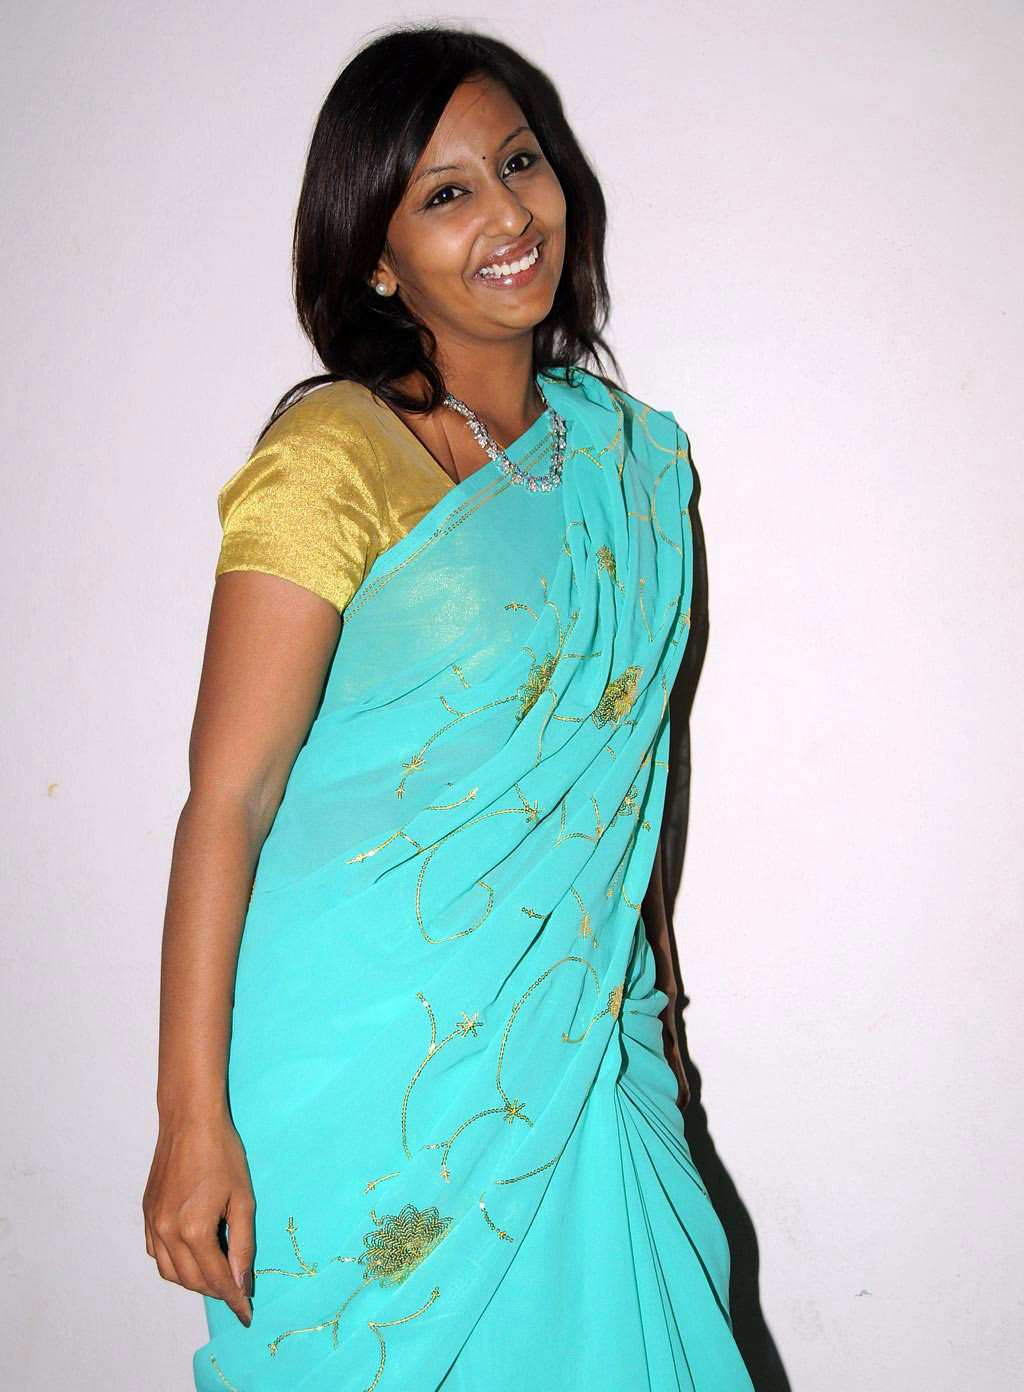 SONIA BOSE SERIAL ACTRESS rare PHOTOS